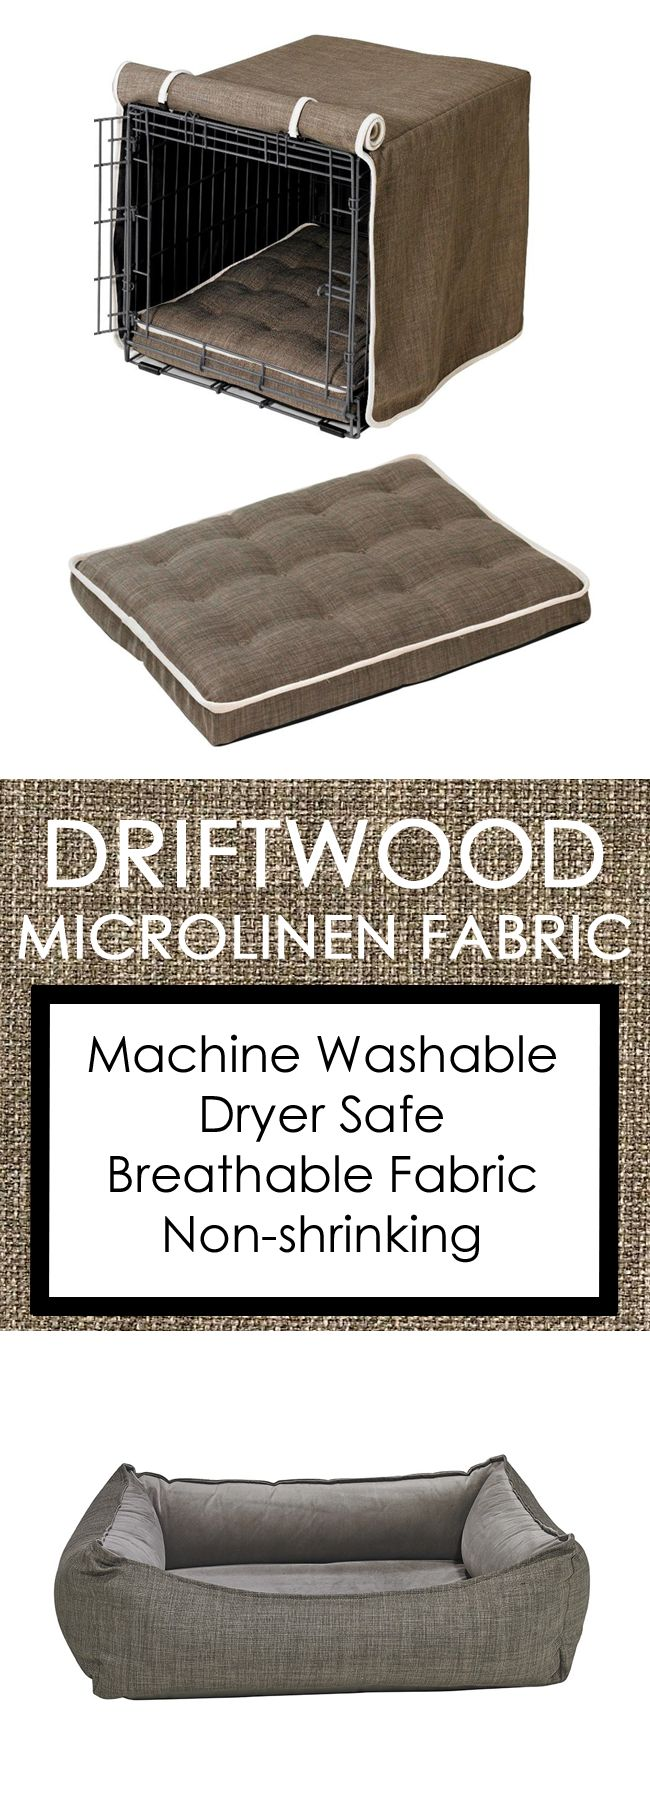 Our Driftwood Microlinen fabric is machine washable and dryer safe. Your dog will love the breathable material and you will enjoy the elegance it adds to your home. Shop Felixchien.com's full collection for crate covers, designer dog beds, dog carriers, collars, leashes and much more!